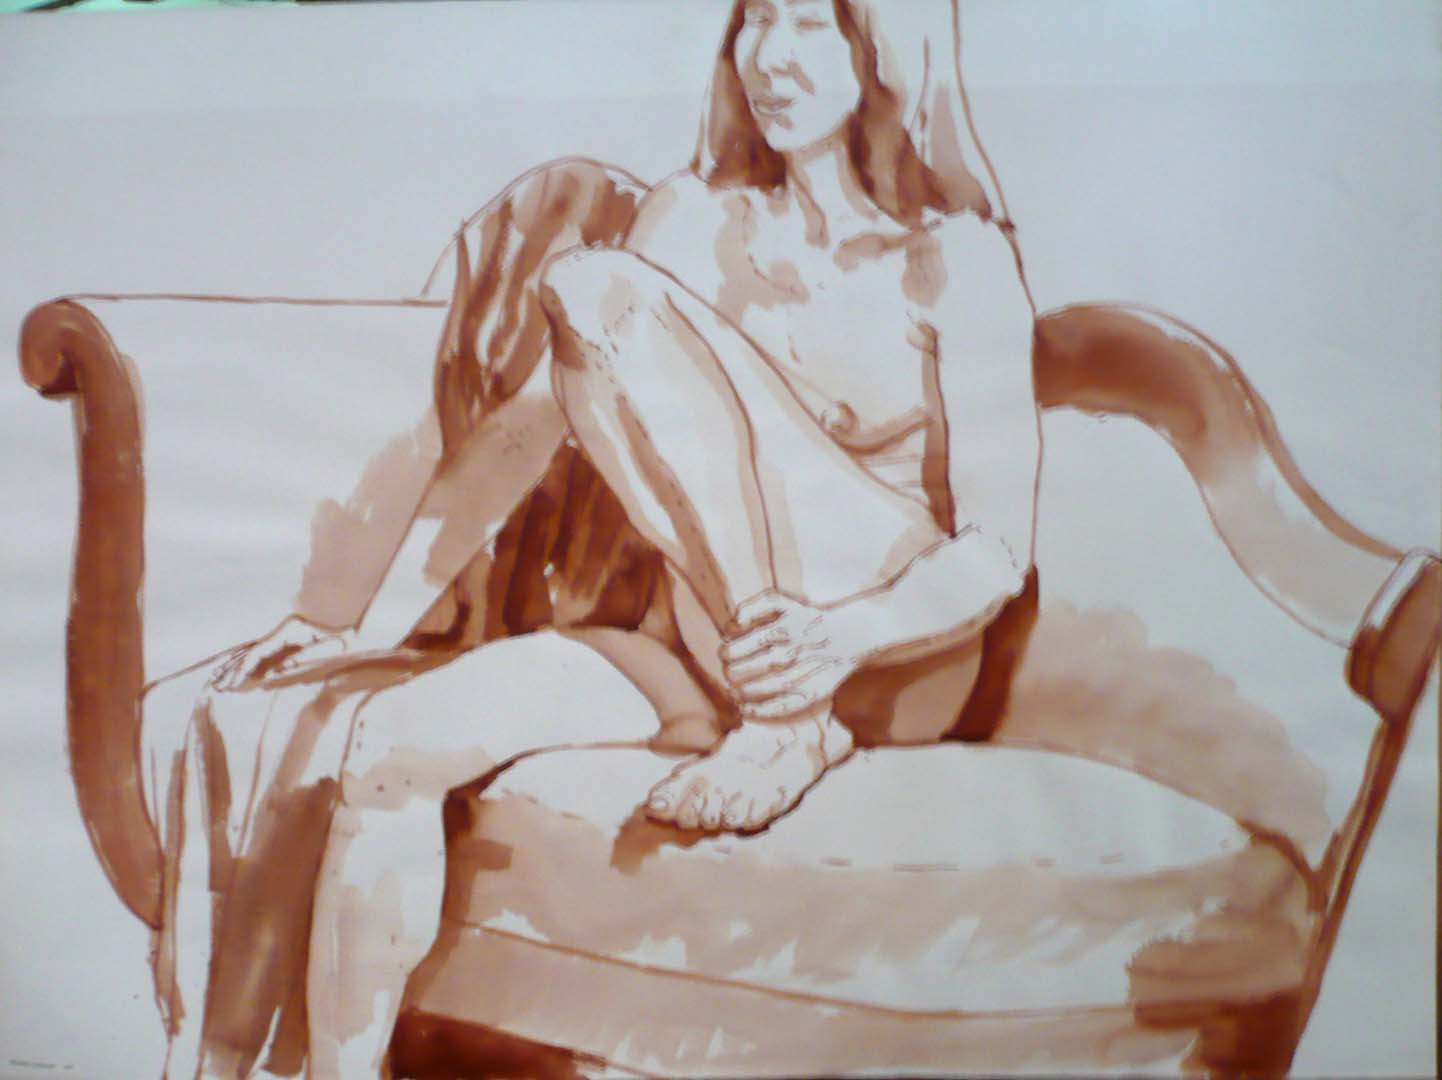 "1969 Seated Female with One Leg Raised on Sofa Sepia Wash 22"" x 29.875"""